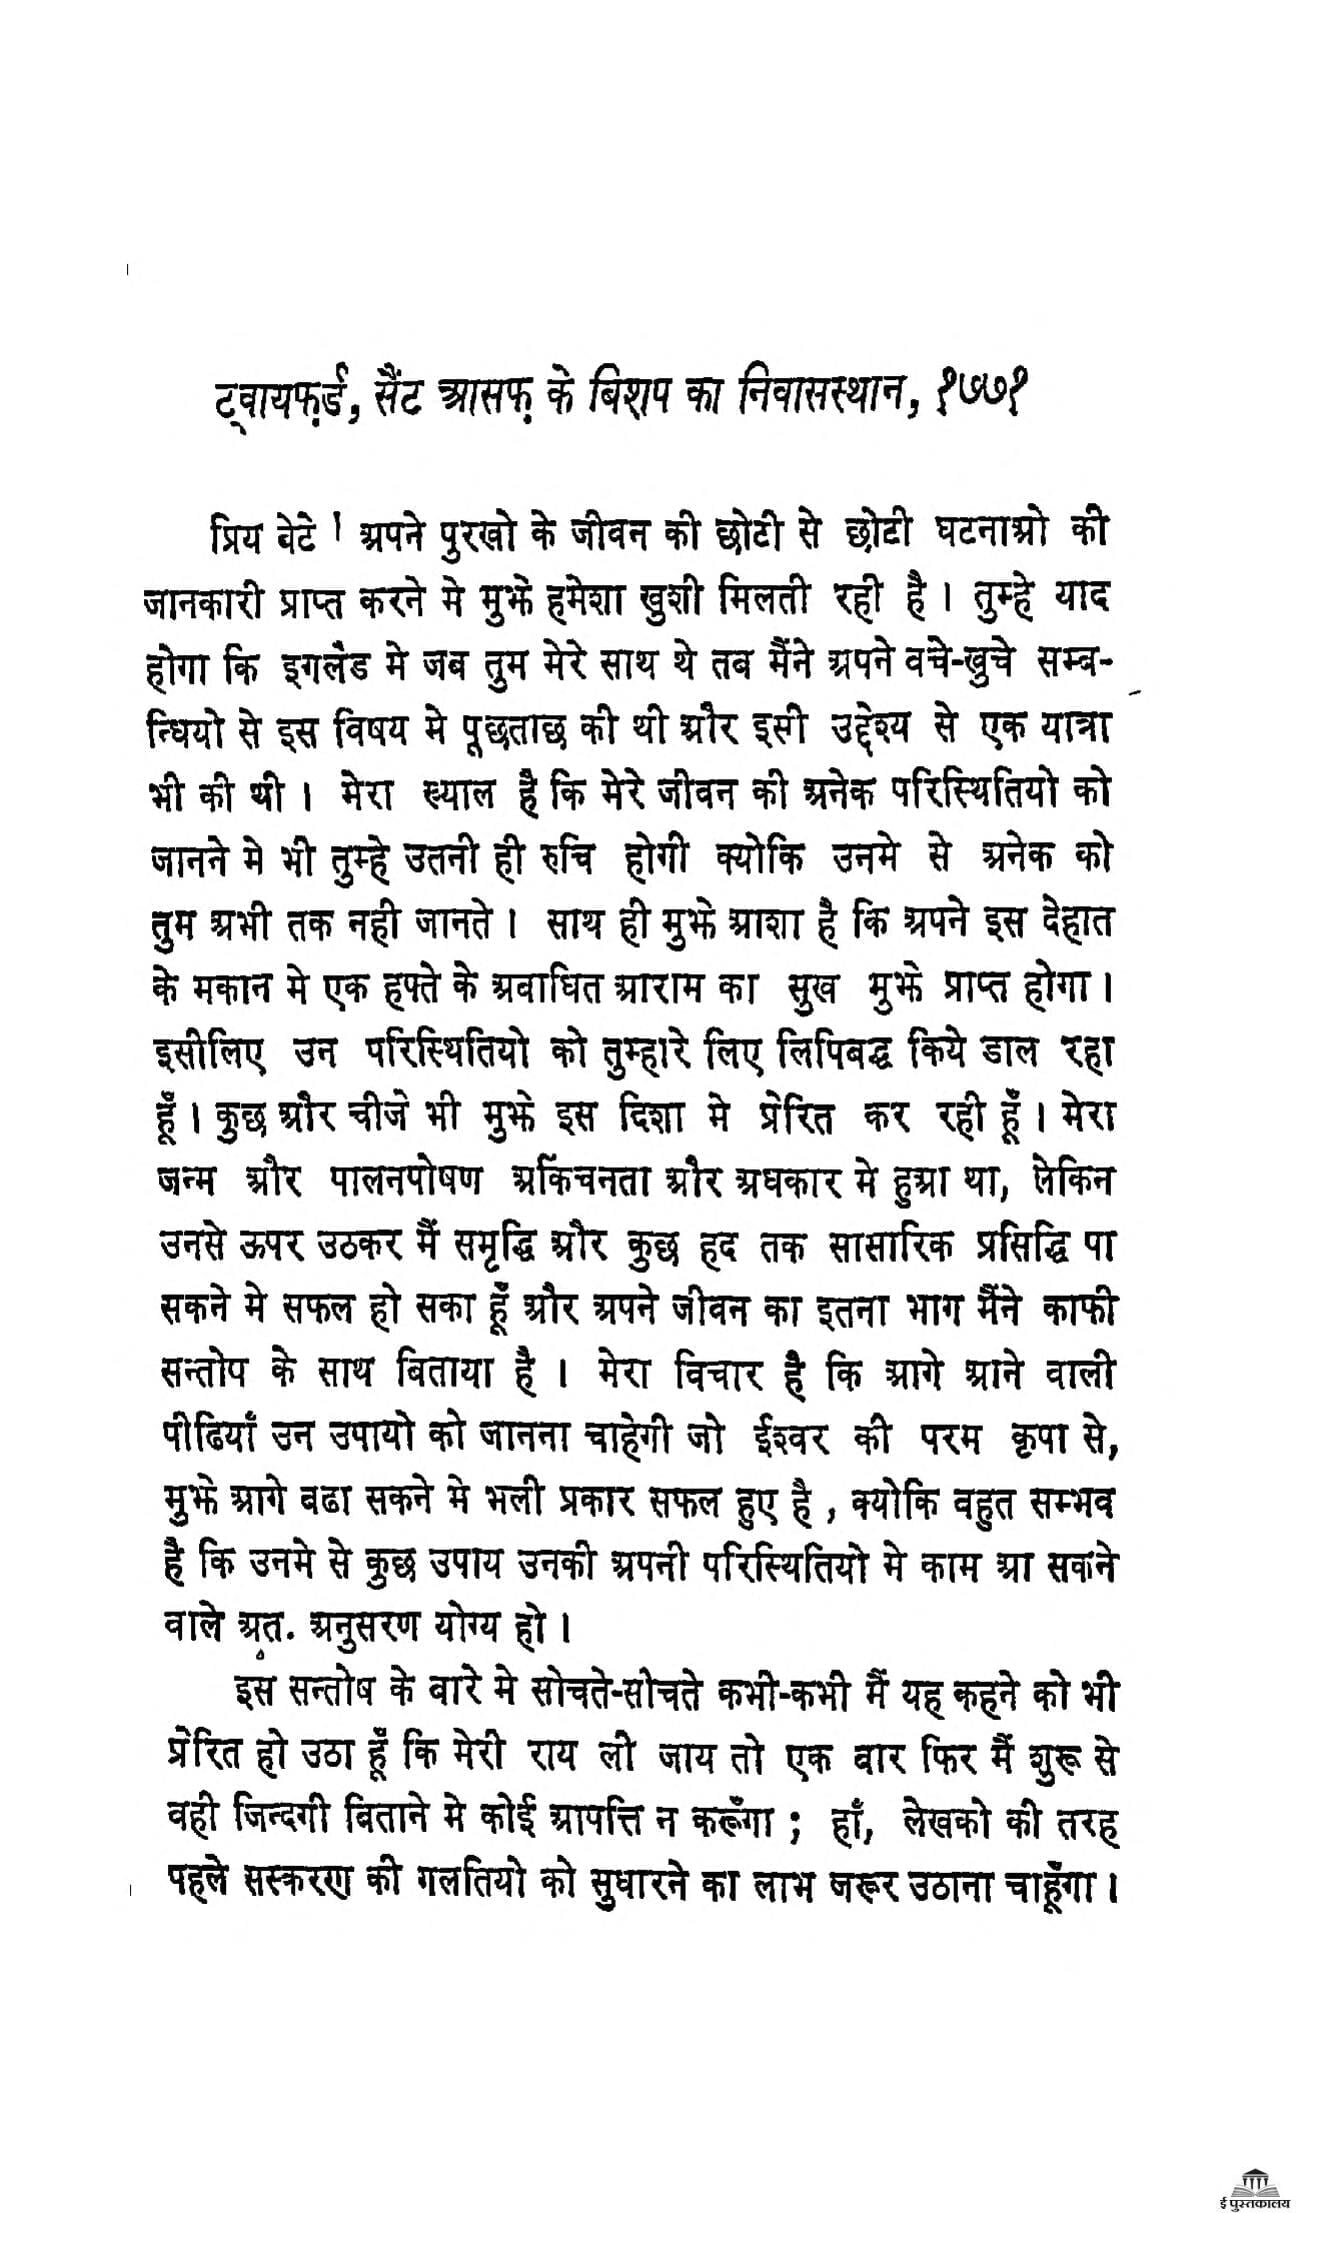 Benjamin Franklin Autobiography Pdf In Hindi